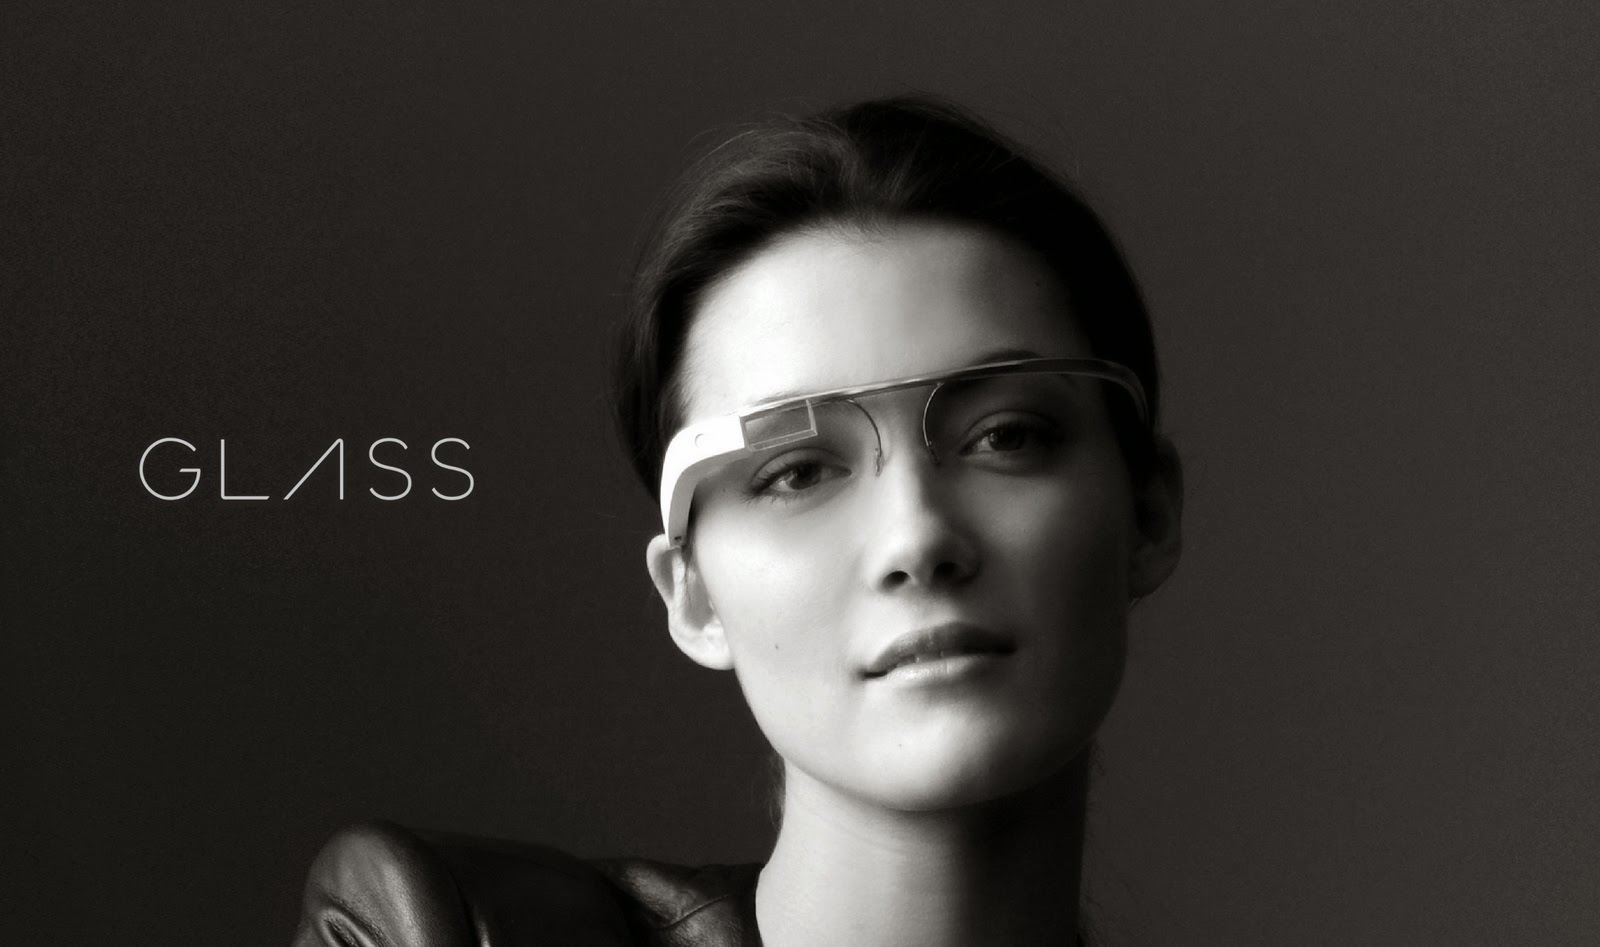 google glass next version